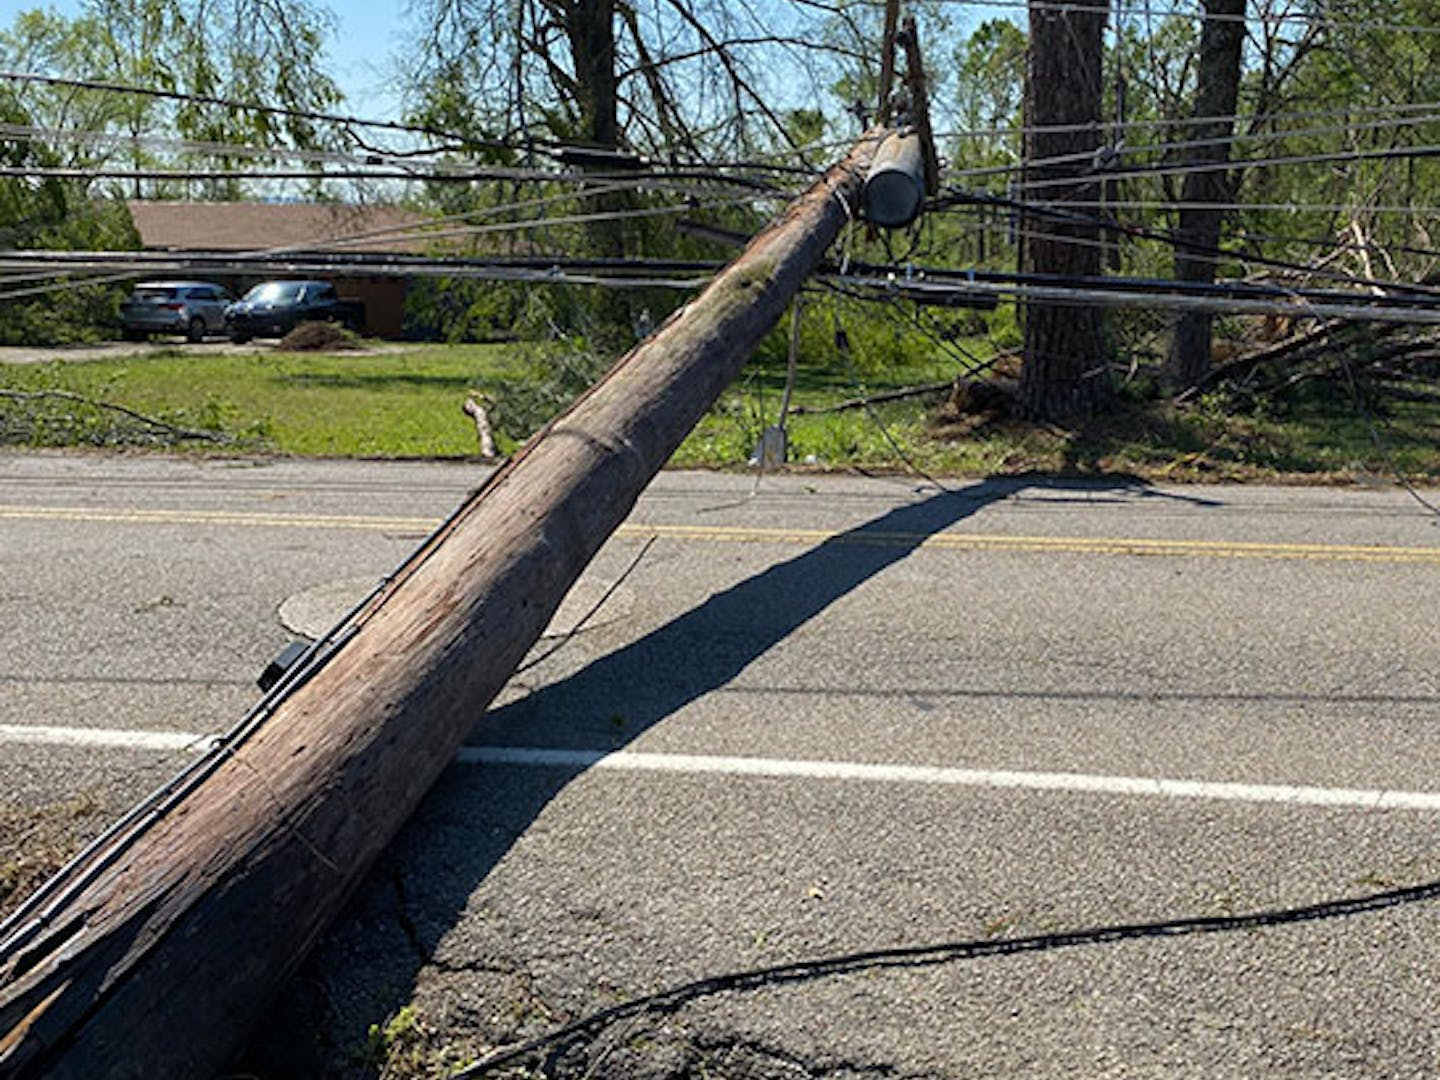 recent-tornado-damage-to-power-infrastructure-tops-28-million-smart-grid-prevented-outages-for-more-than-44000.jpeg